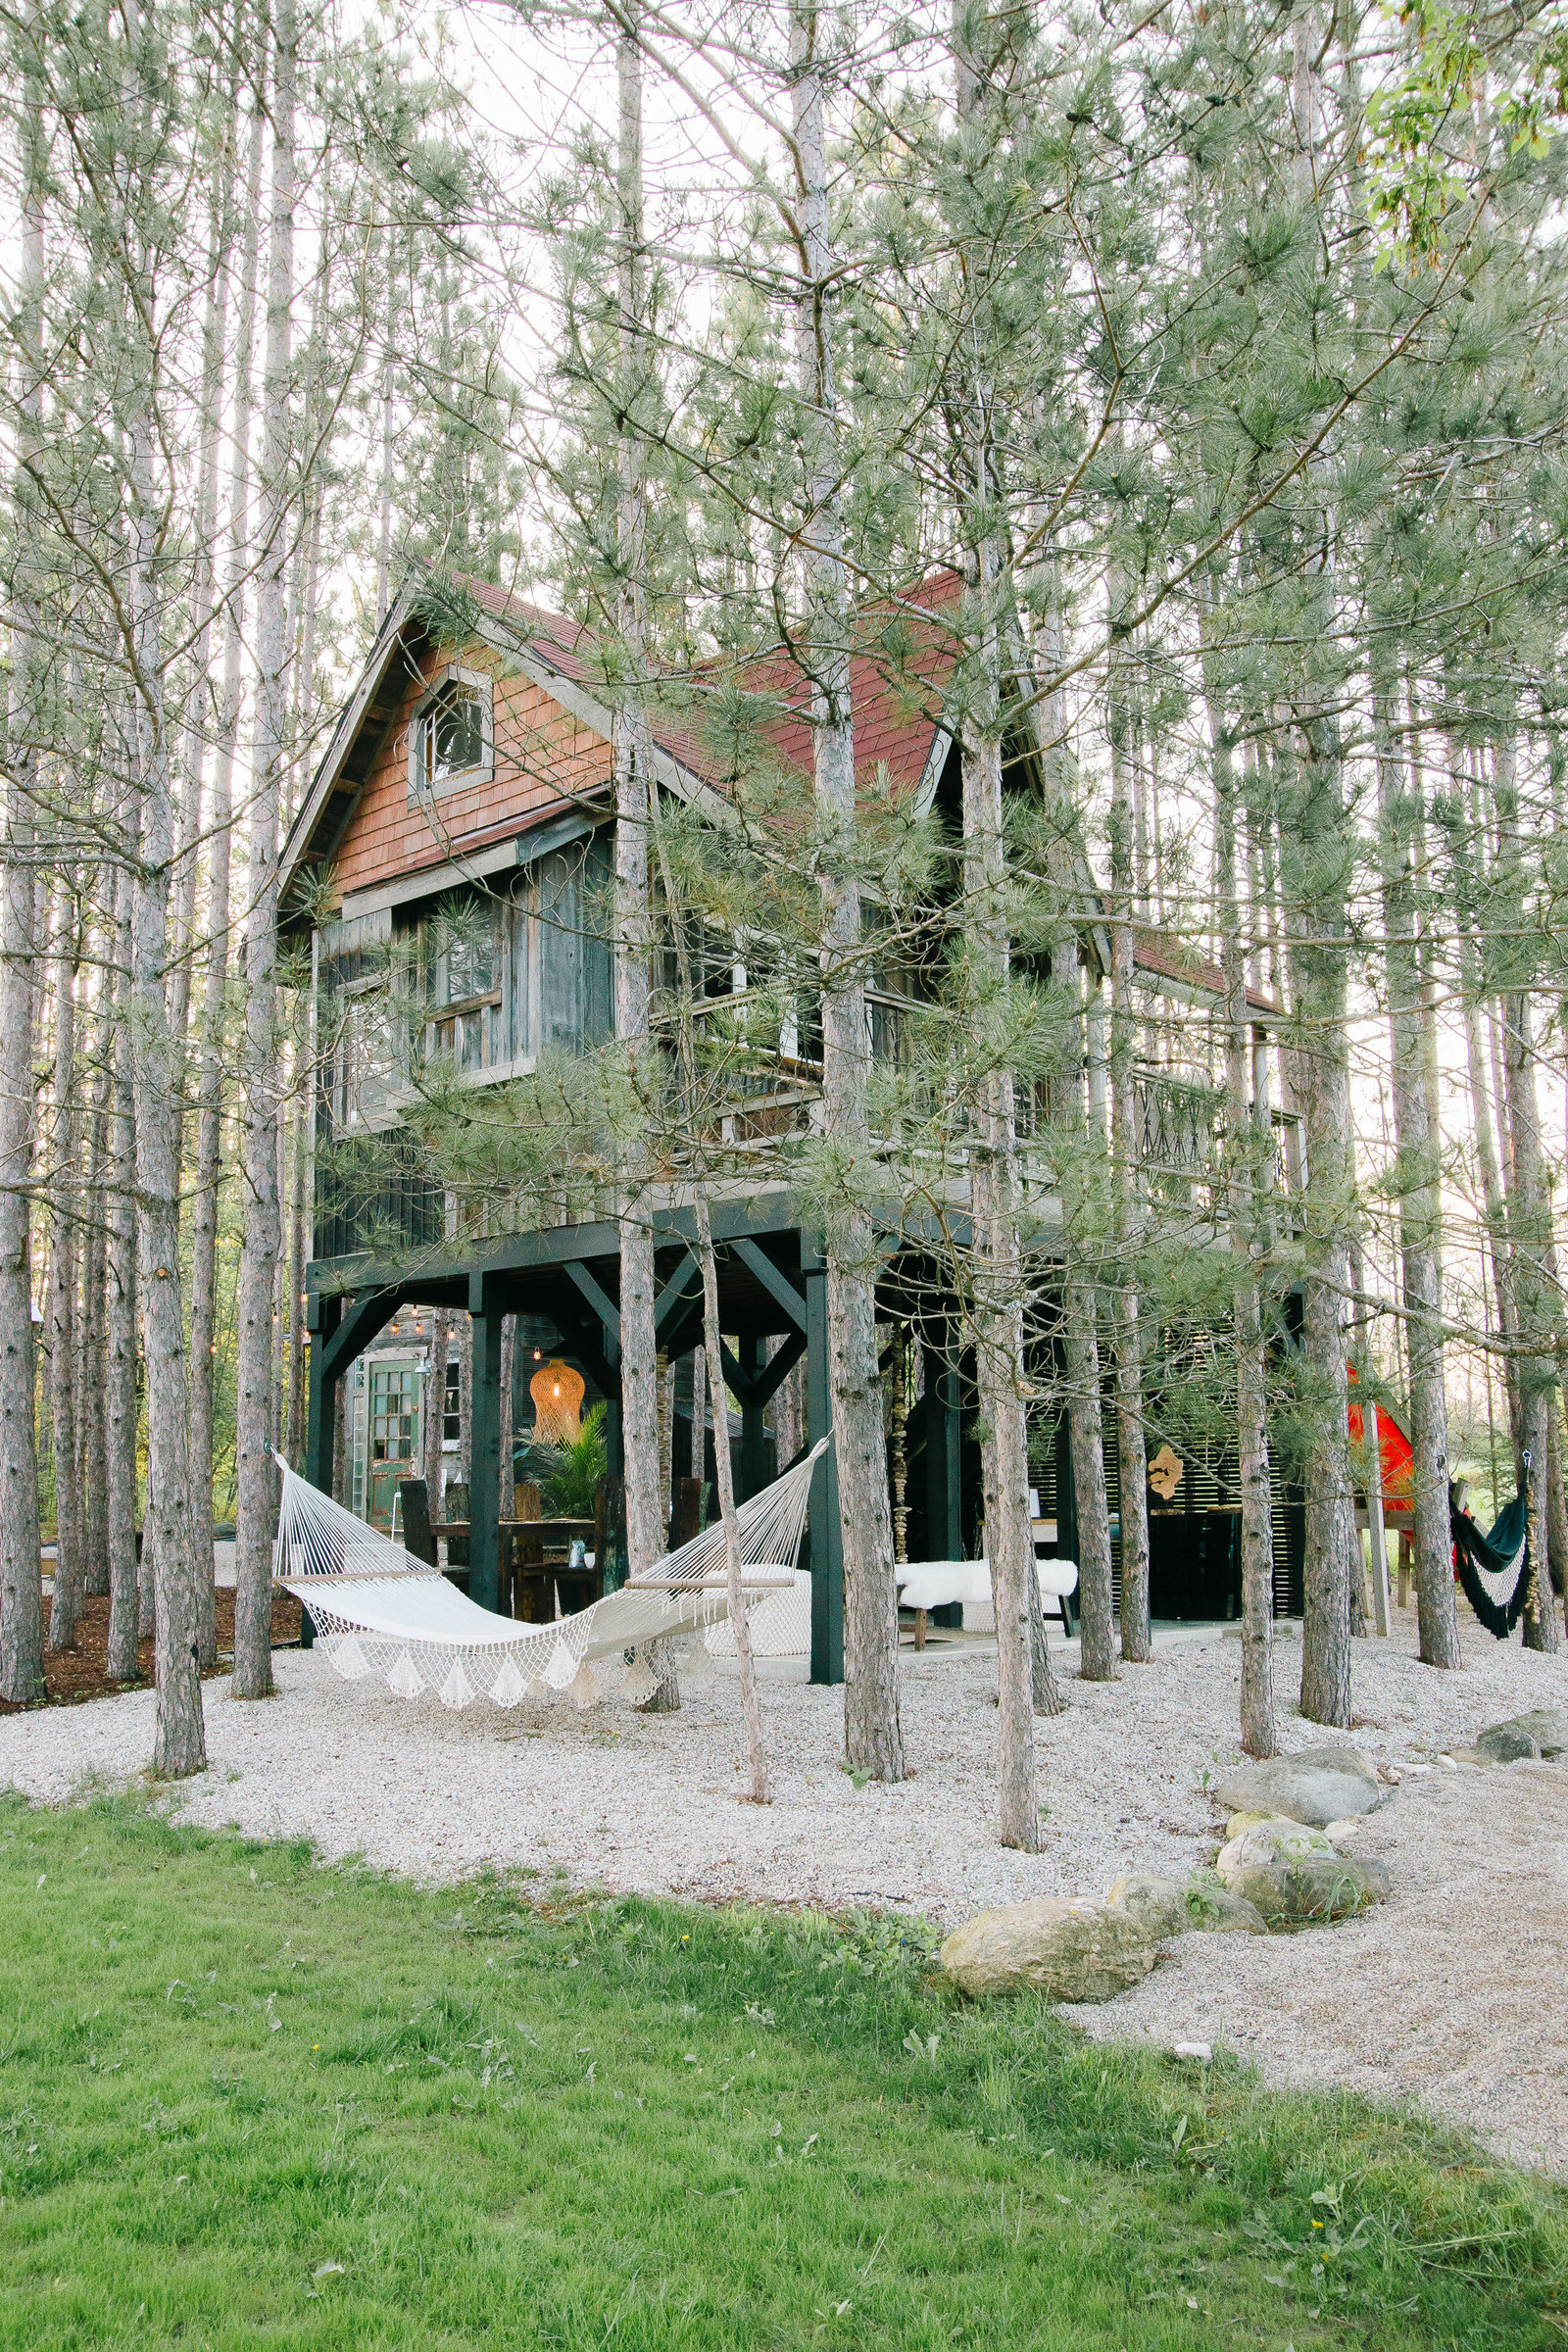 Check out one of the top treehouses in the world | Design The Life You Want To Live